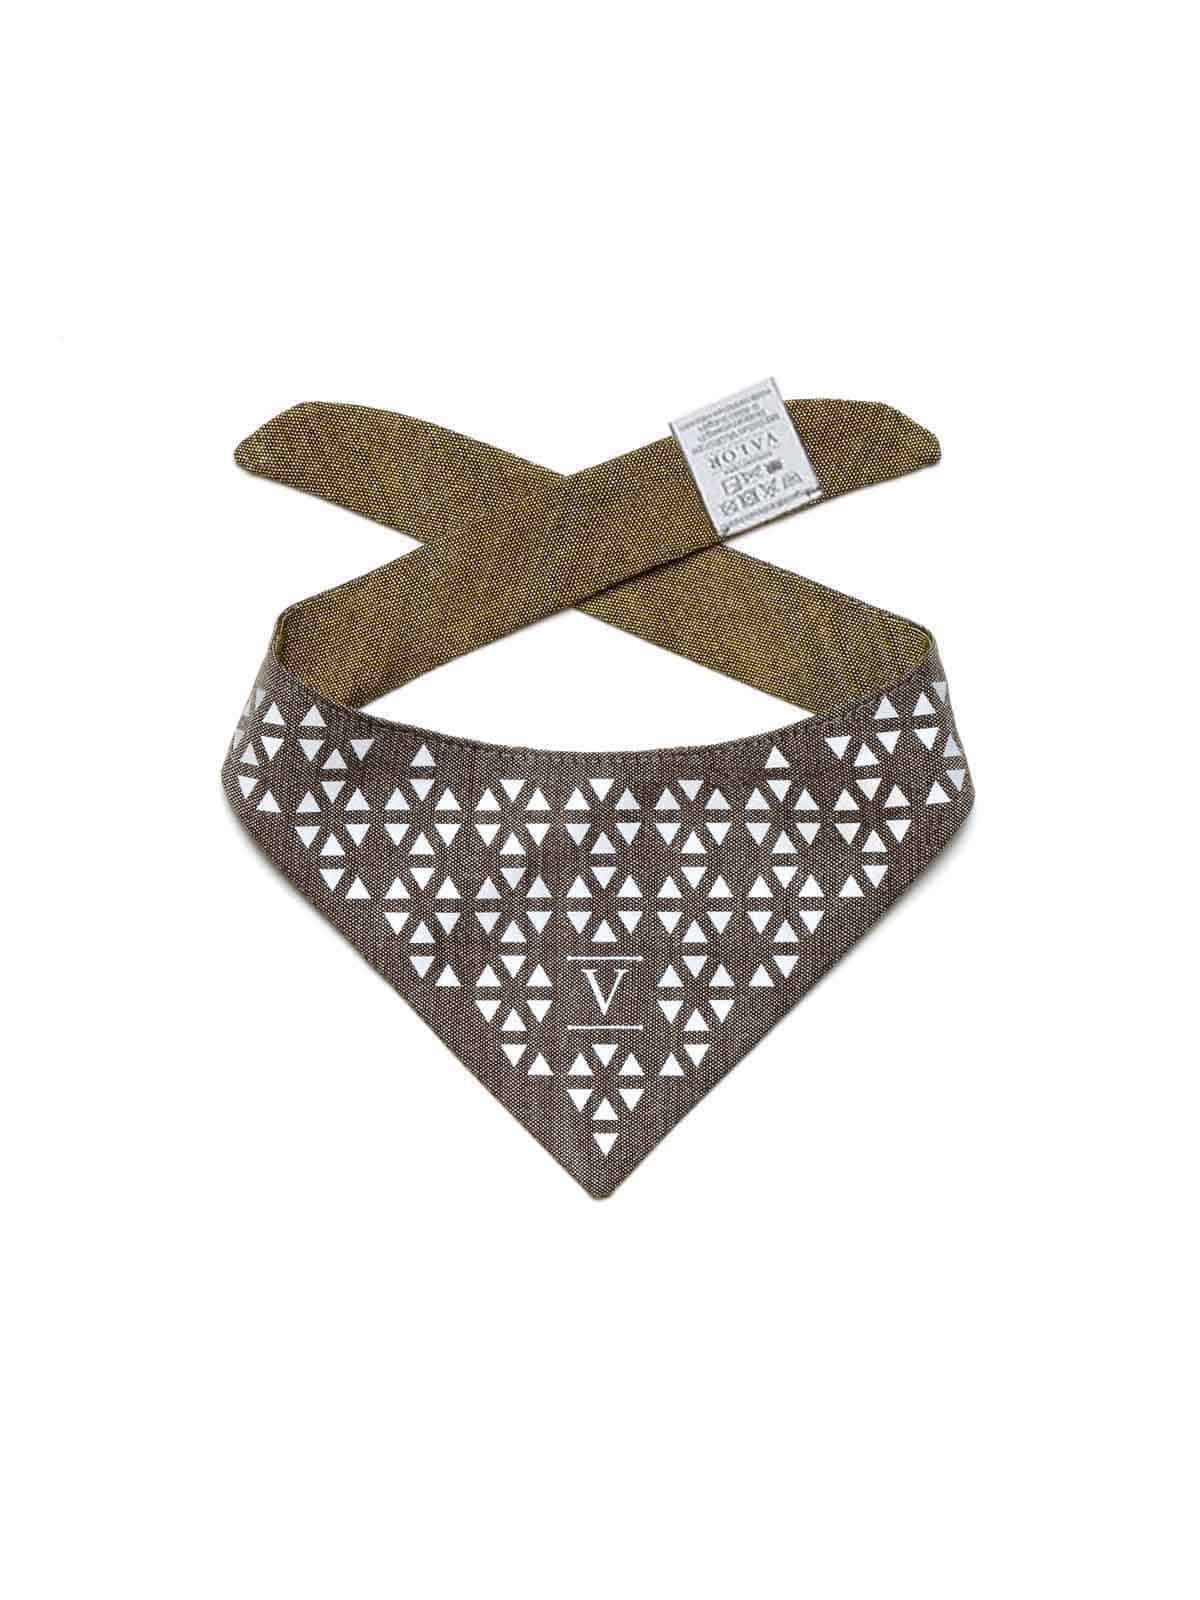 dog bandanas, cute dog bandanas, dog scarf collar